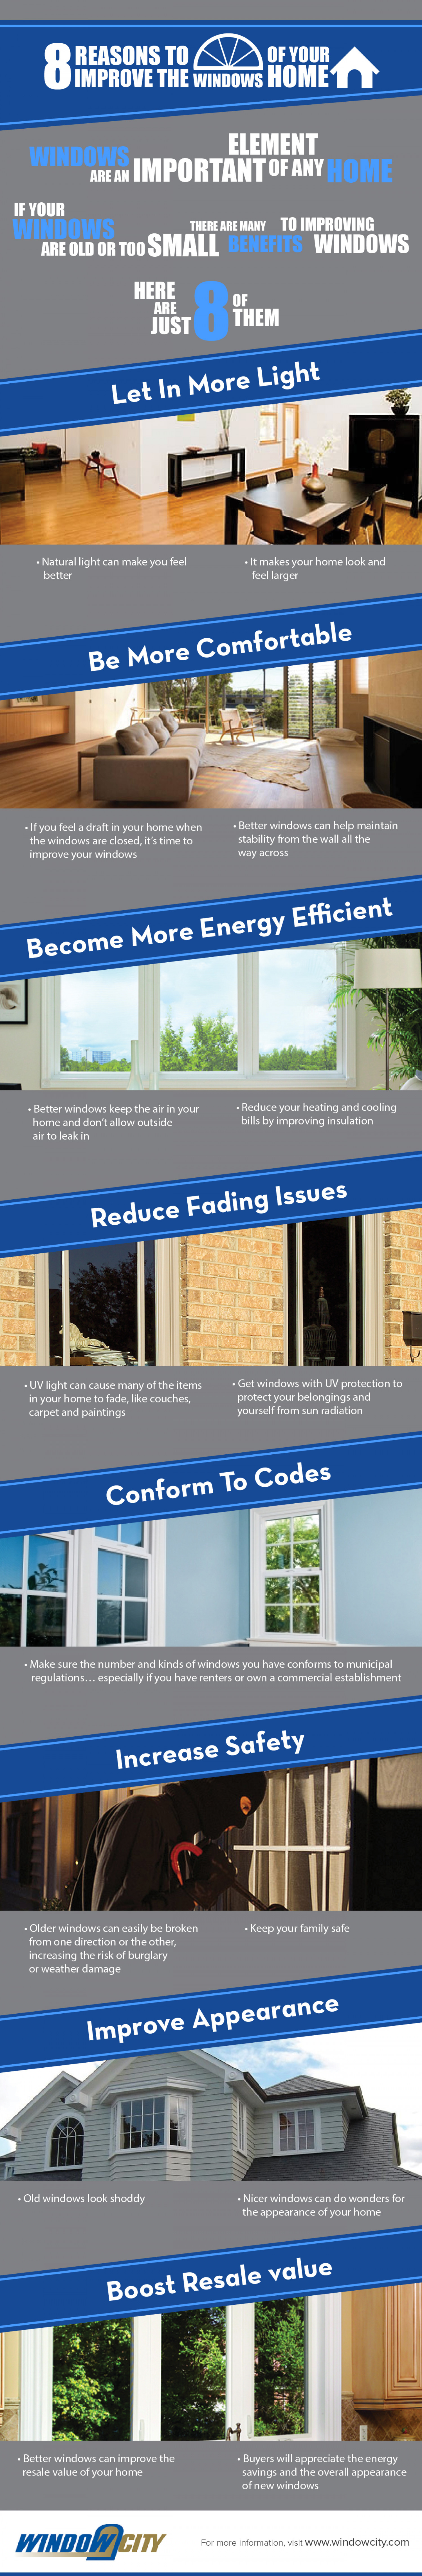 8 Reasons to Improve the Windows of Your Home Infographic